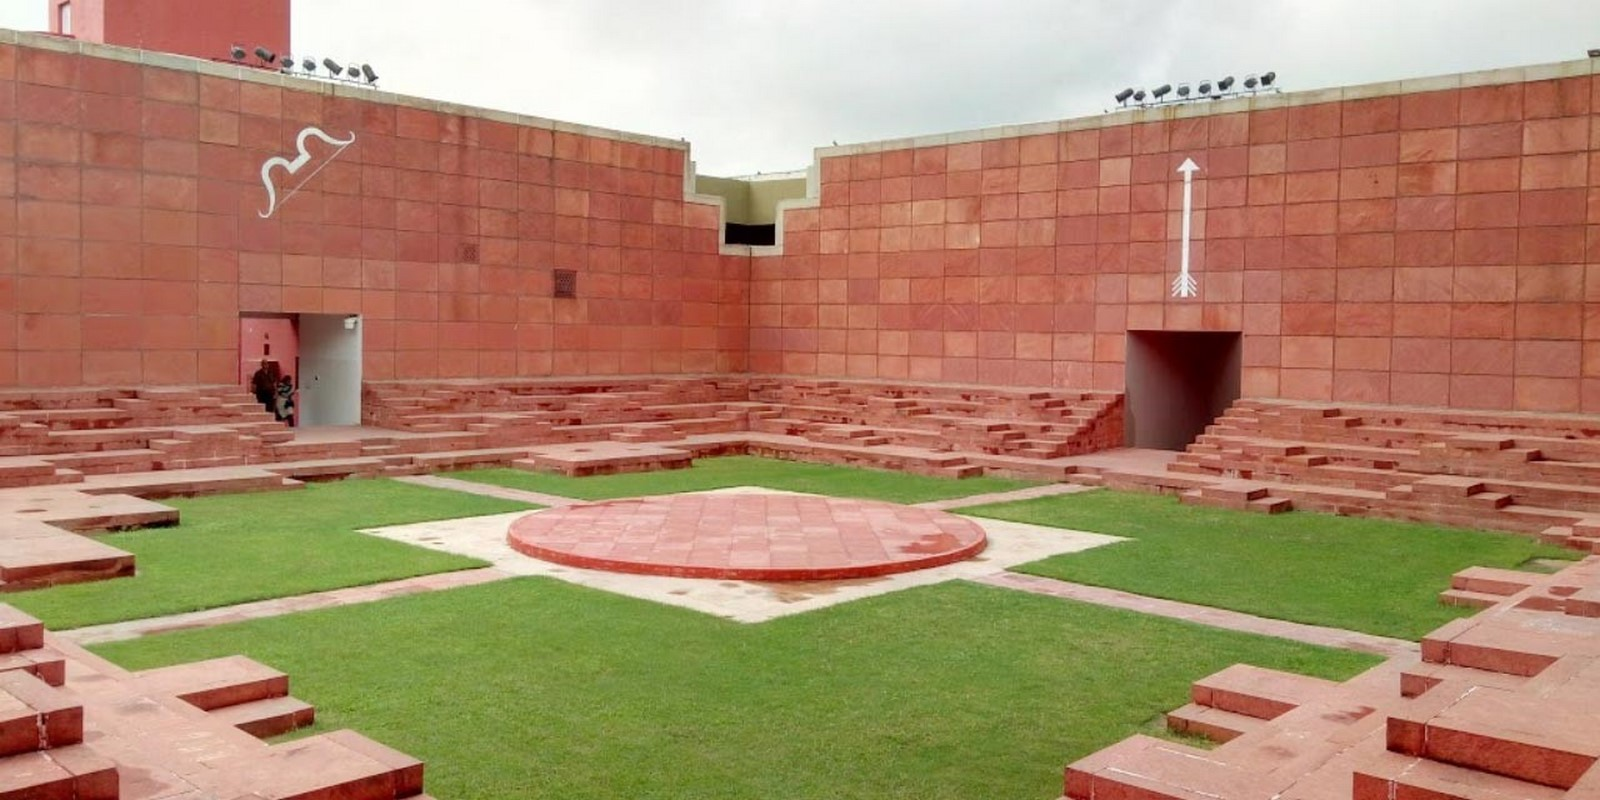 Revisiting the past: Indian independence and Architecture - Sheet5